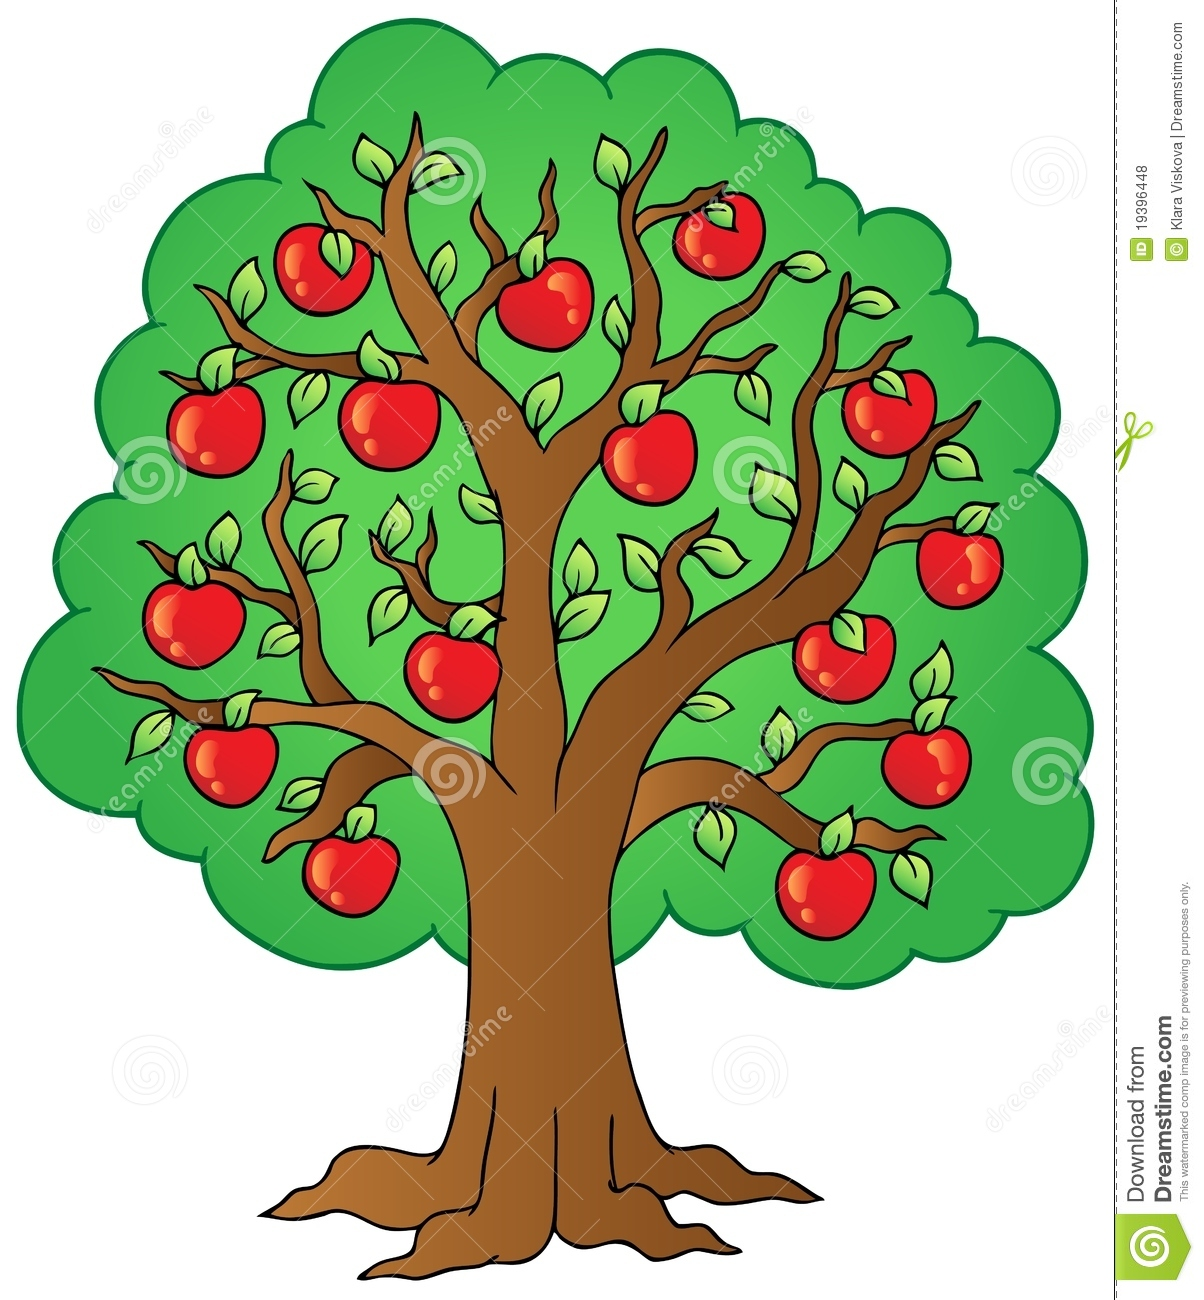 manzana service of process In manzana we live on our customers  many have had serious difficulties with this process,  delivering quality and service to a new business relation.